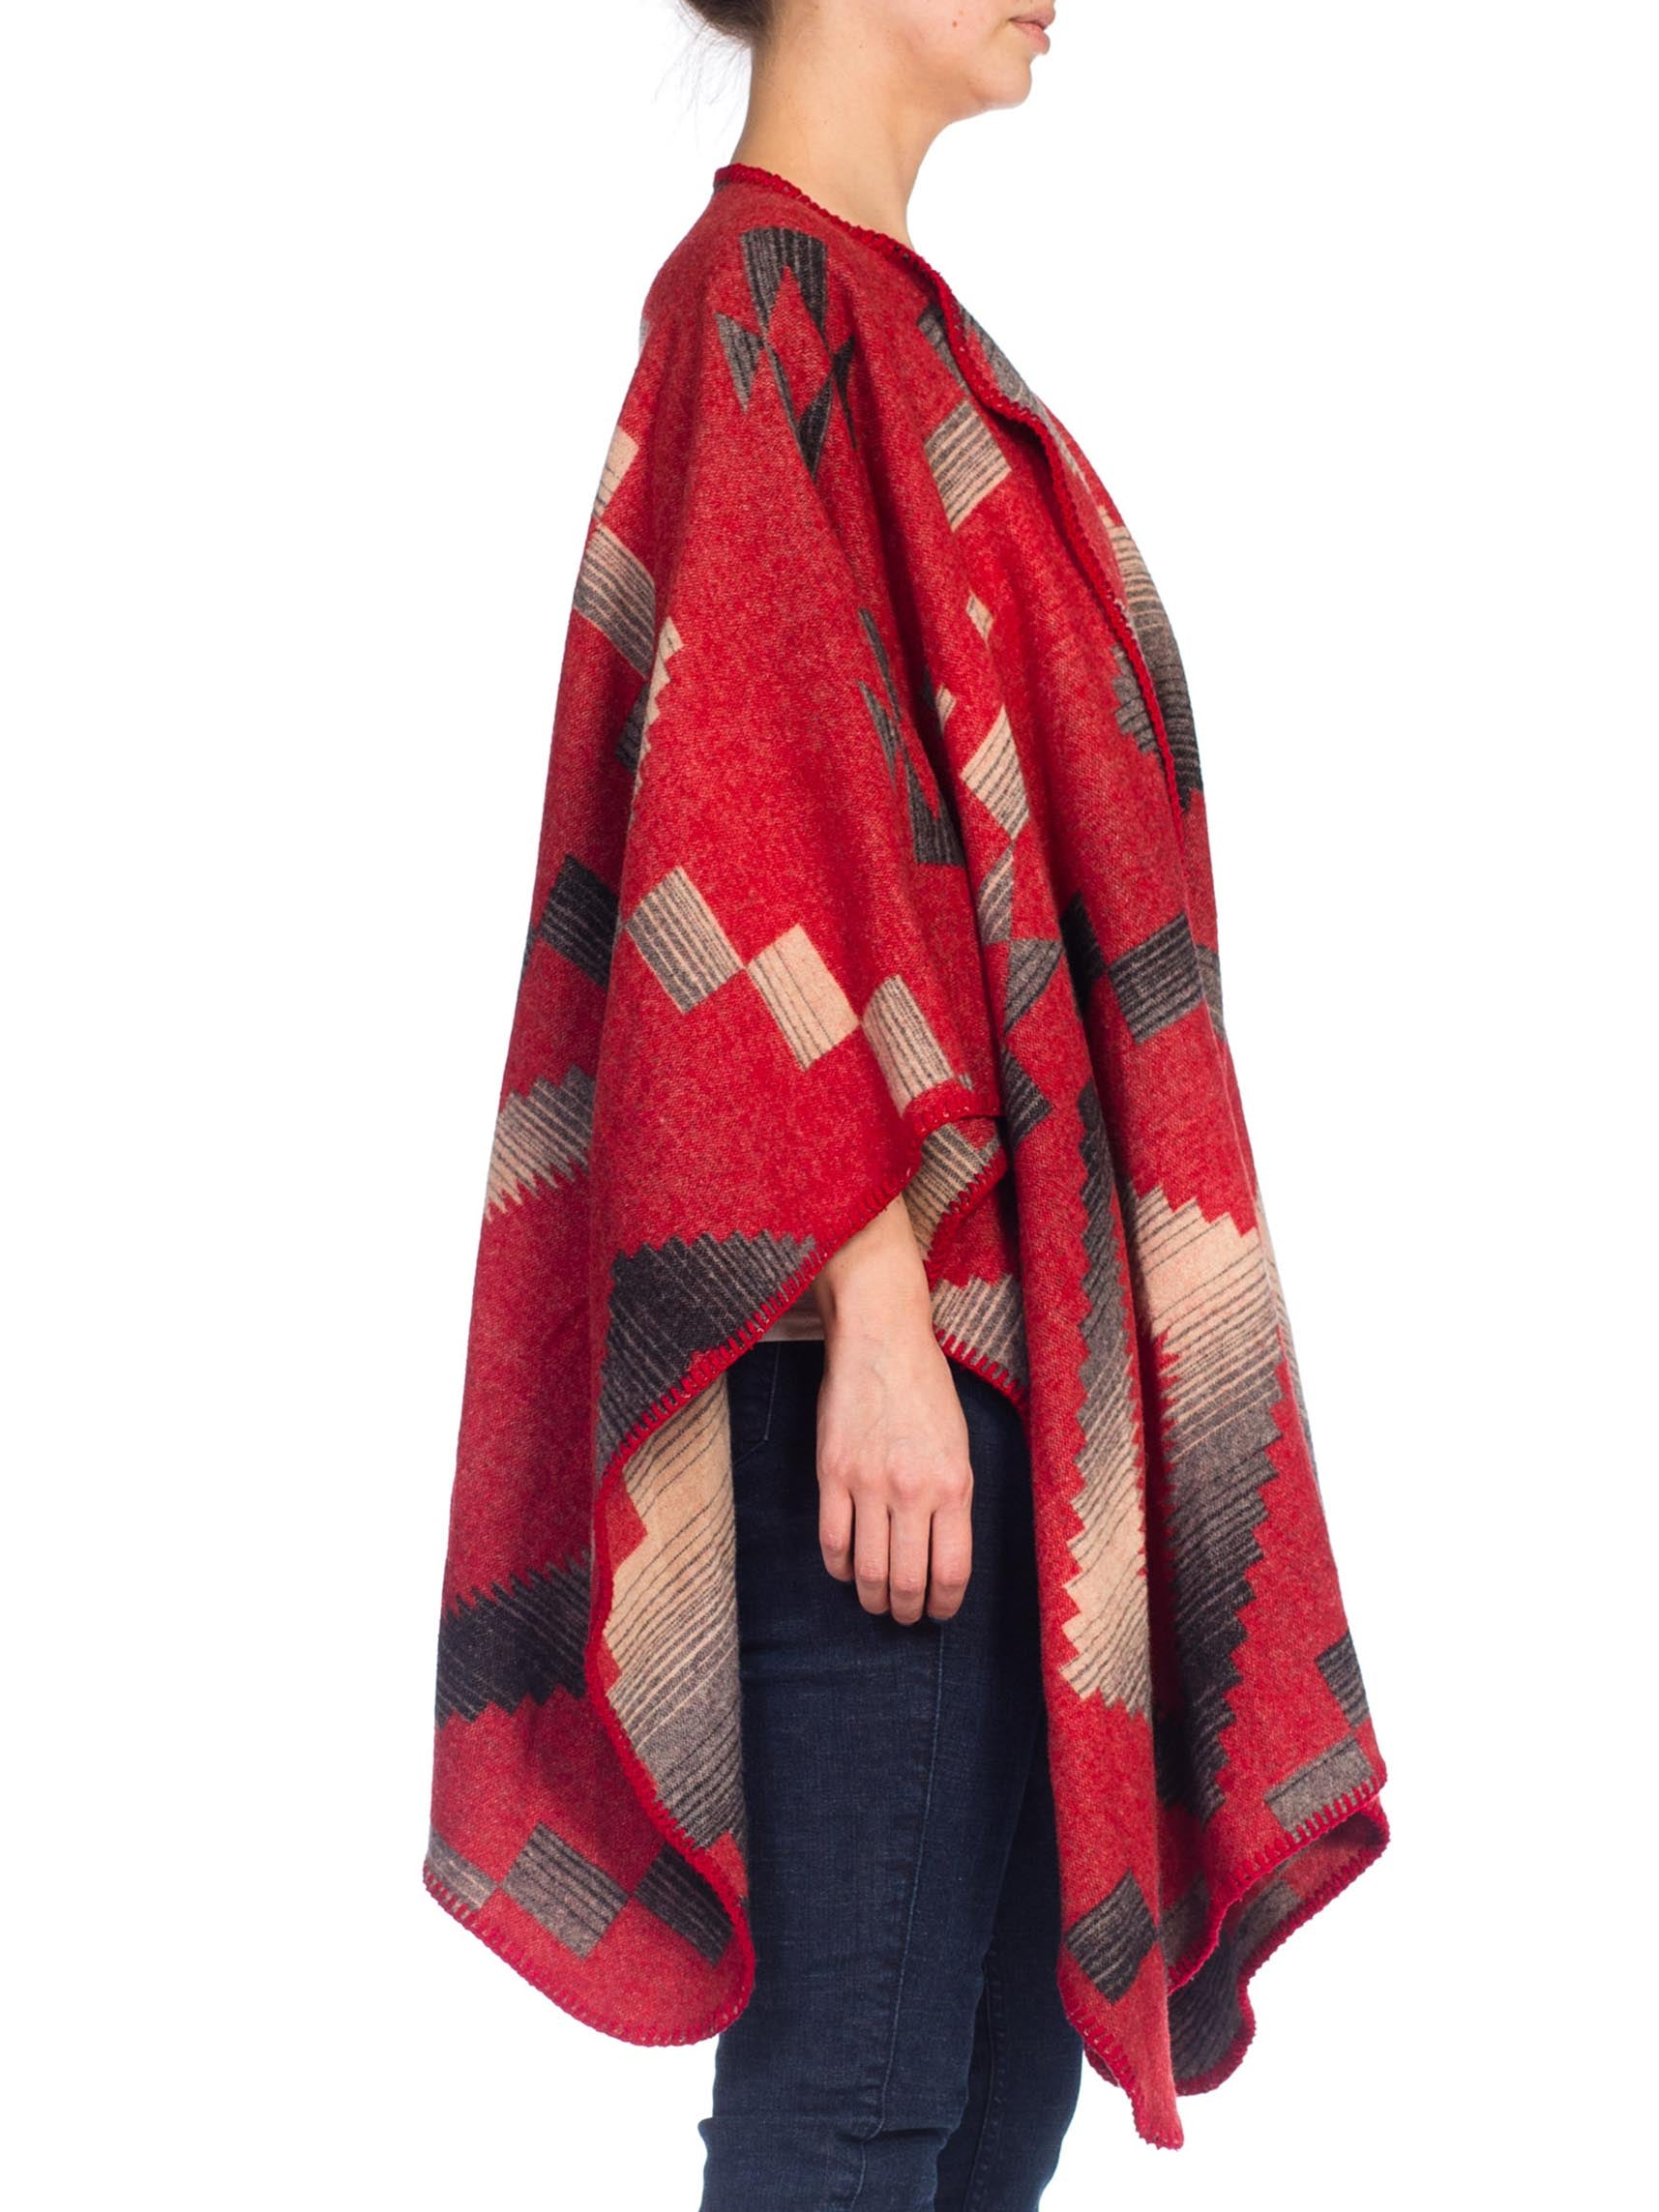 Native American Navajo Blanket Poncho Wool Cape – MORPHEW